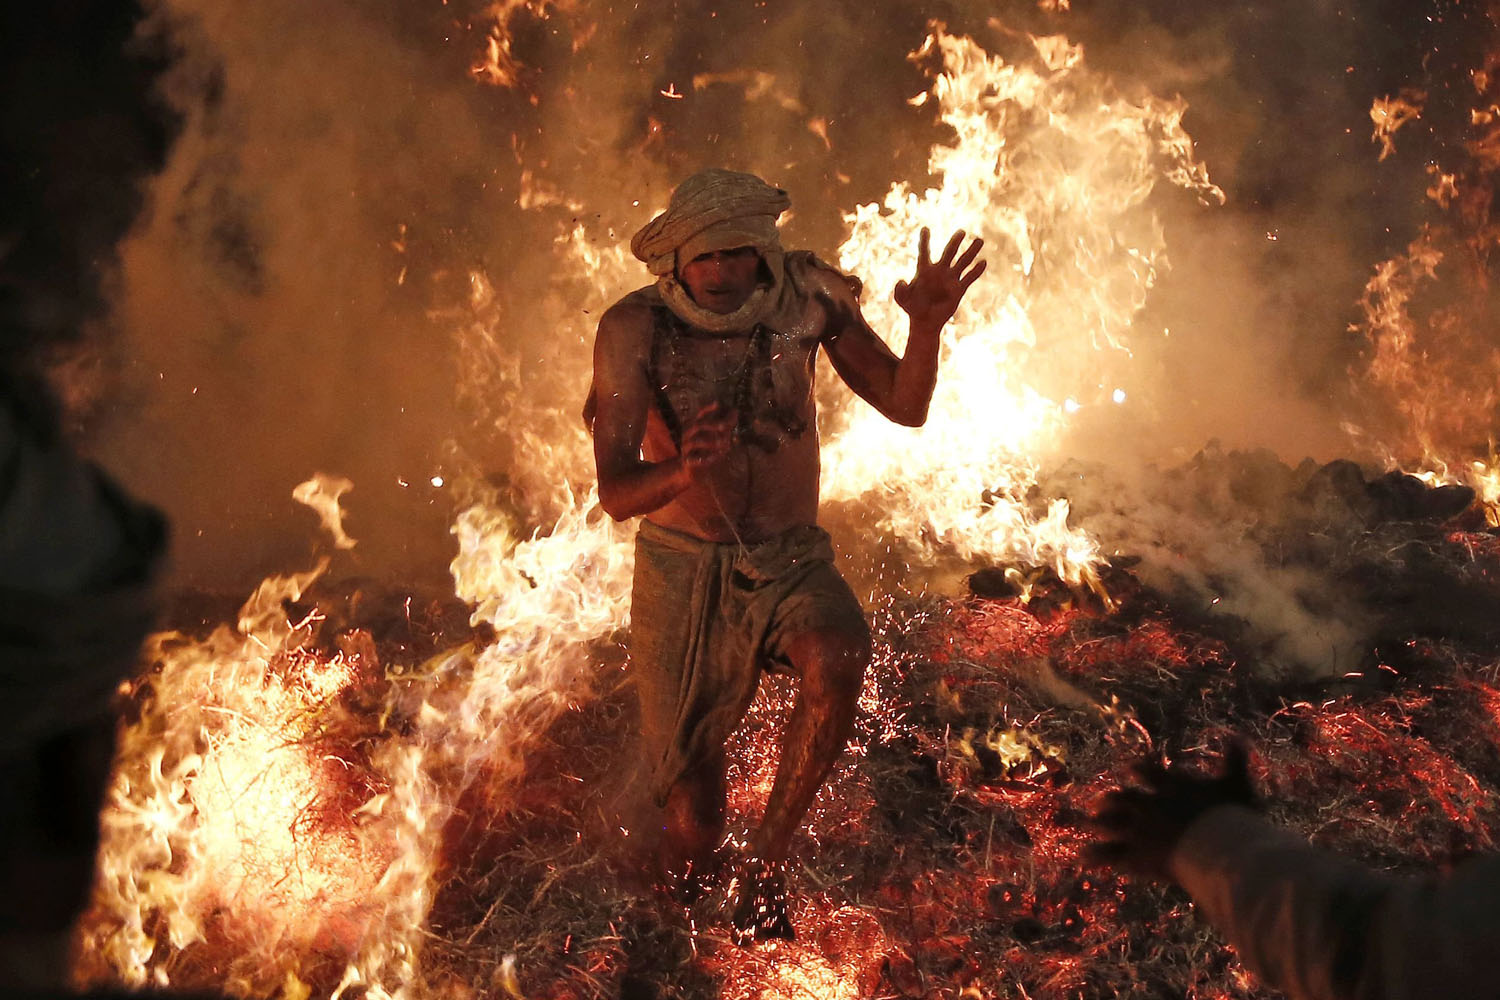 Mar. 17, 2014. Hindu priest Babulal jumps out of a fire to signify the burning of the demon Holika during a ritual to mark the first day of the Holi spring festival, also known as the Festival of Colours, at village Phalen near the northern Indian city of Mathura.